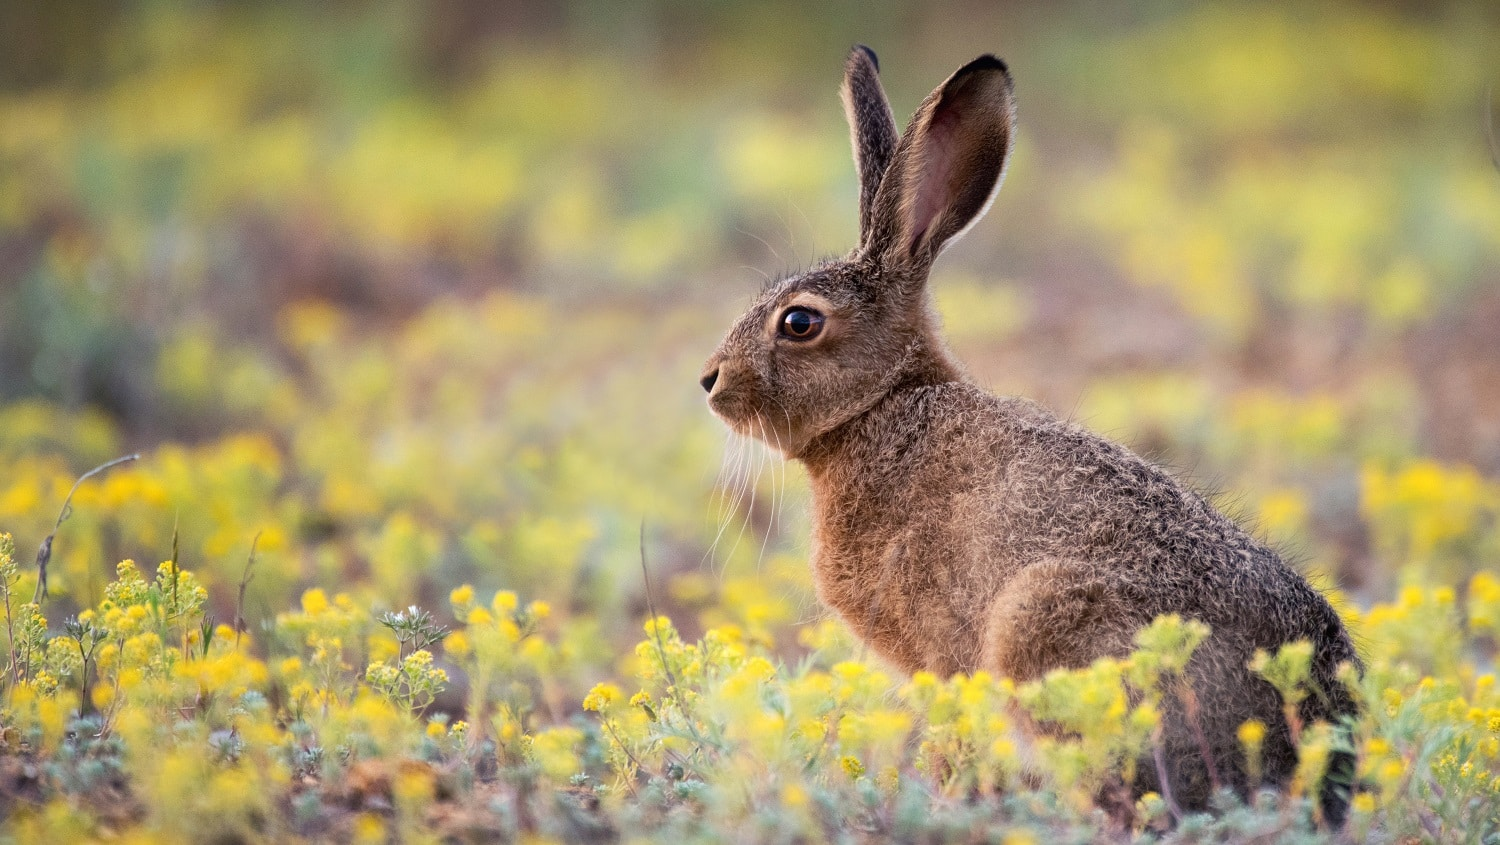 European hare stands in the grass and looking at the camera (Lepus europaeus).